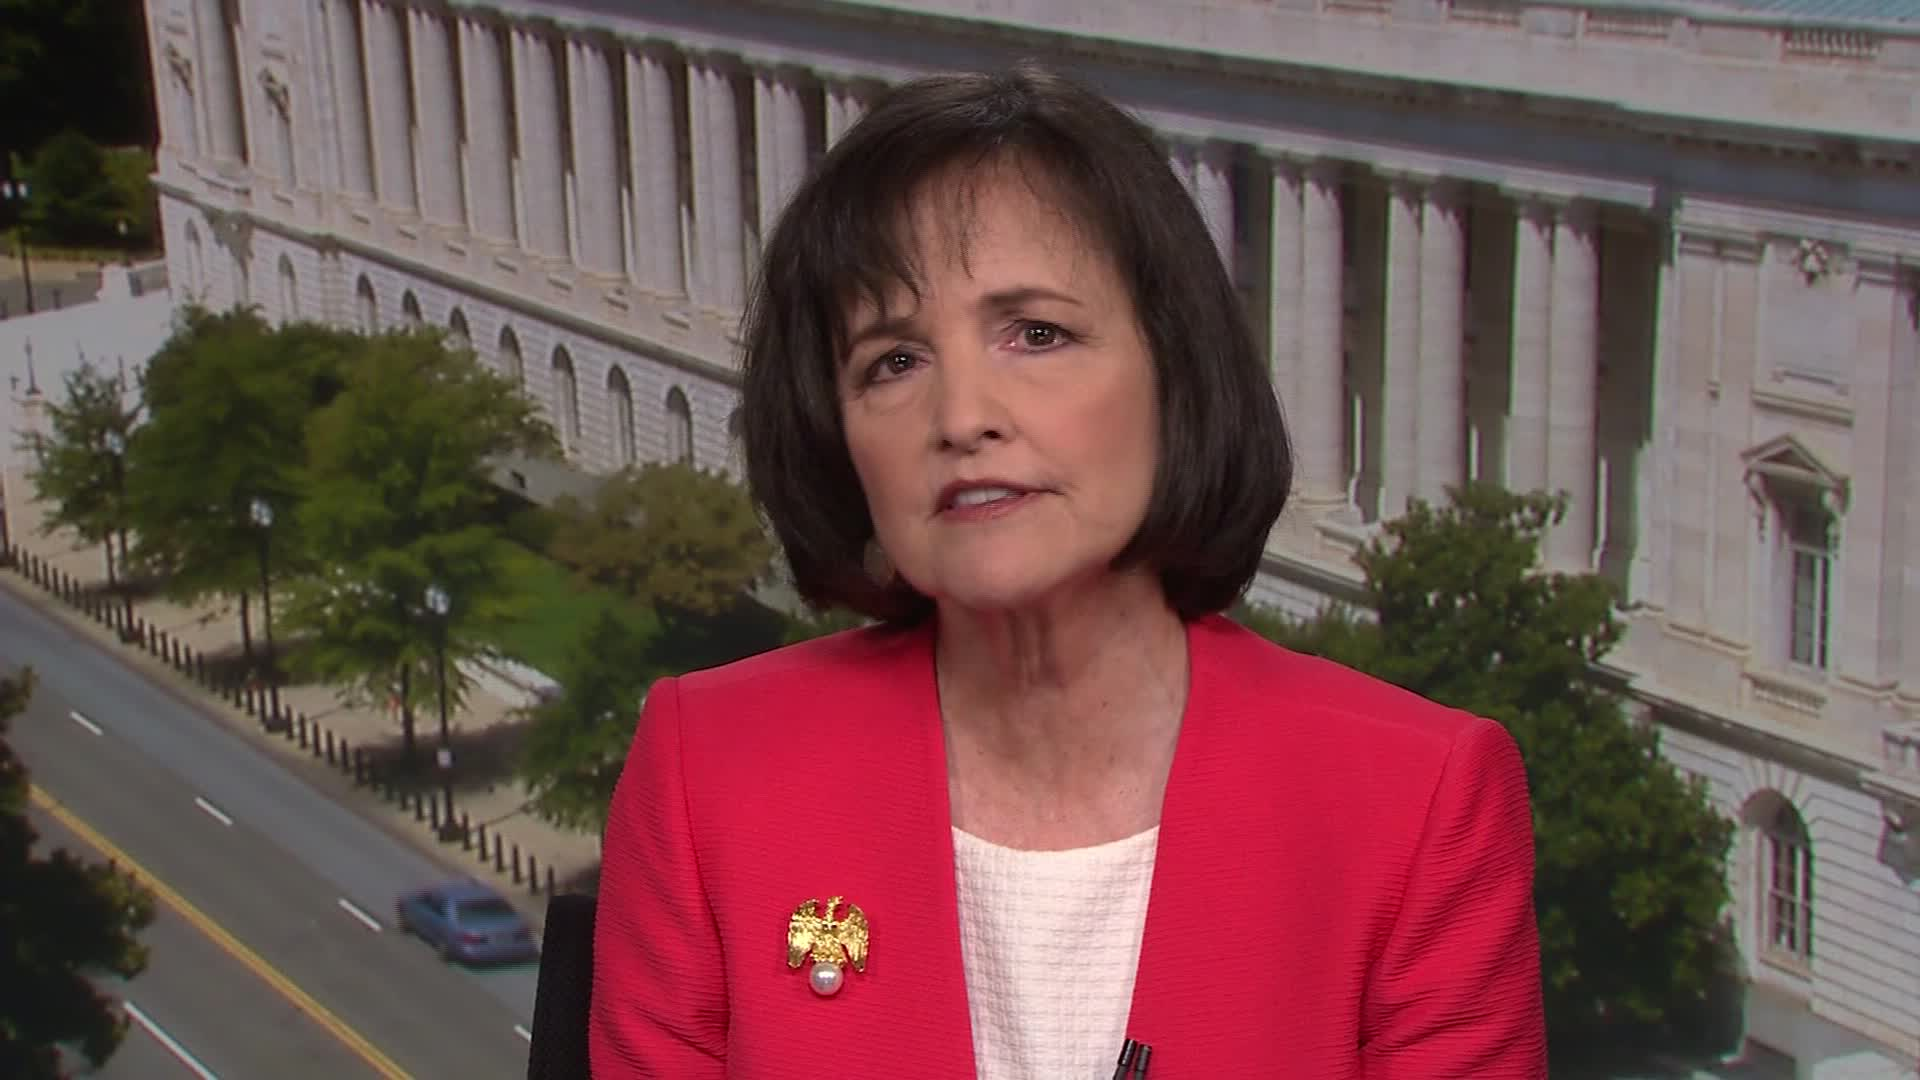 Trump takes the next step in Judy Shelton's nomination to Federal Reserve board